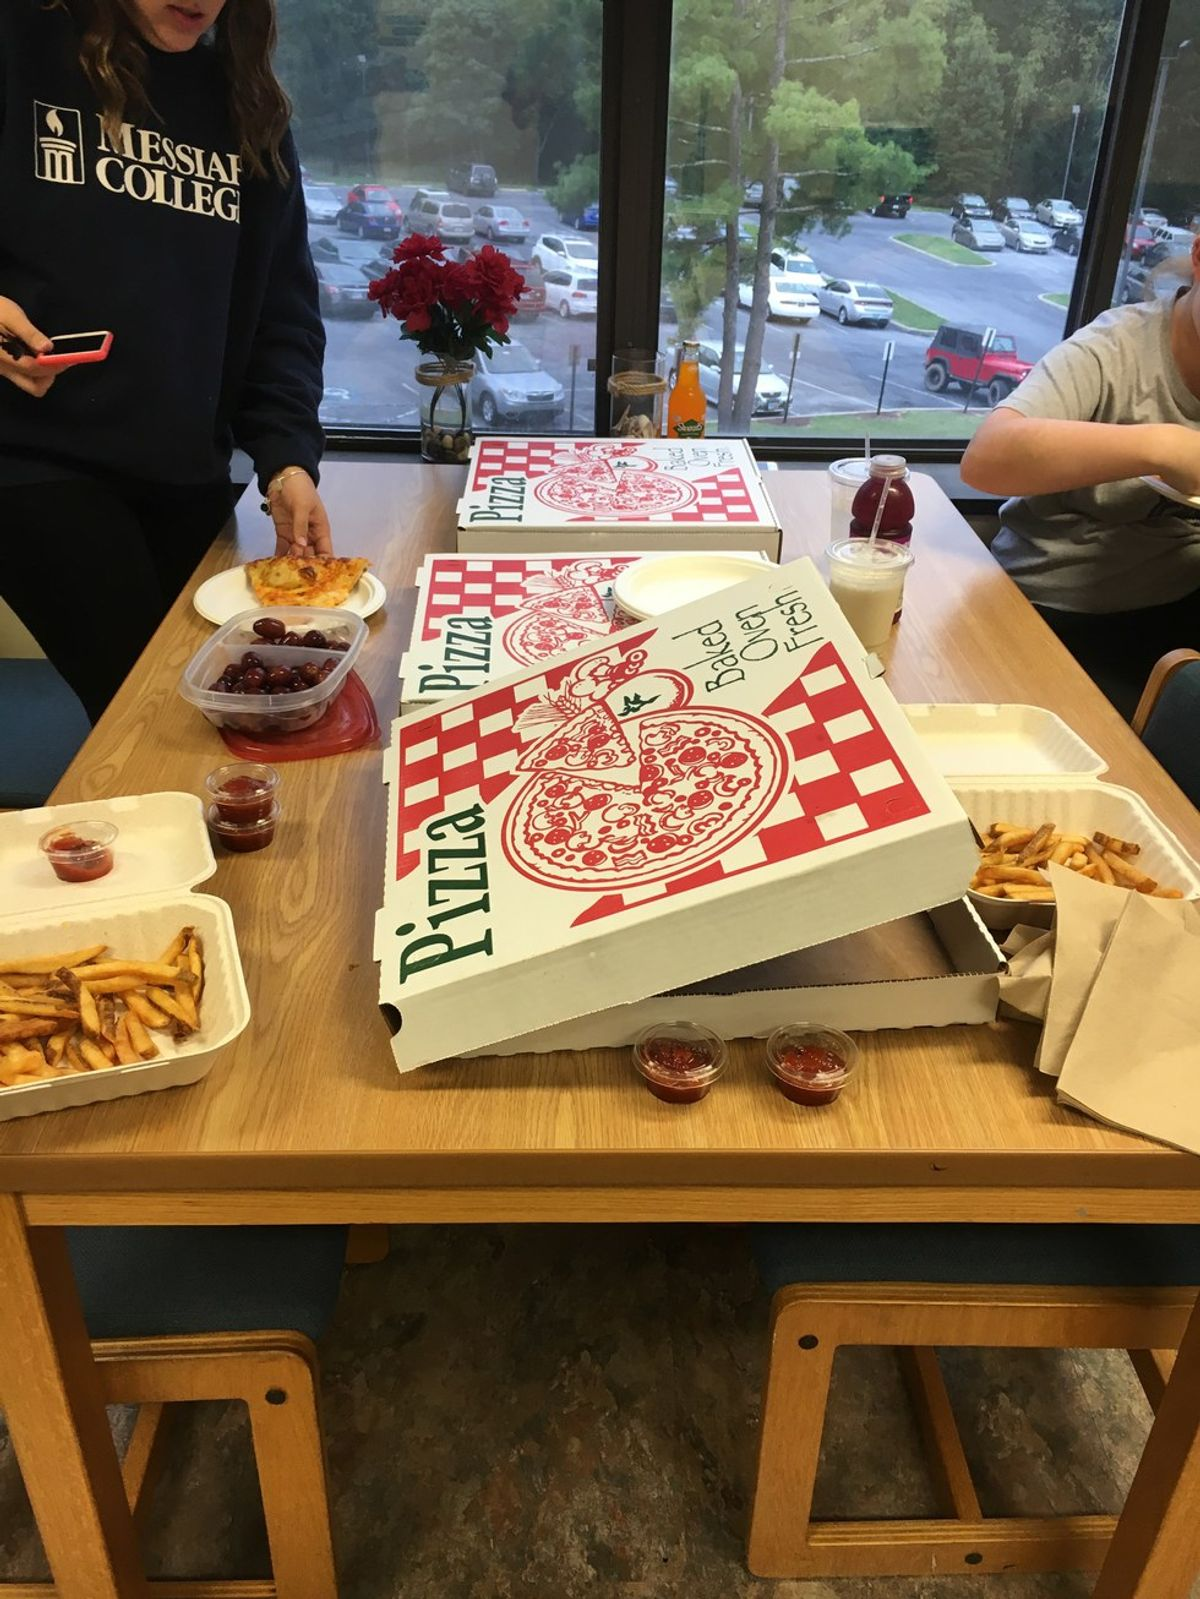 Seven Things I Should Not Have Eaten During Finals Week